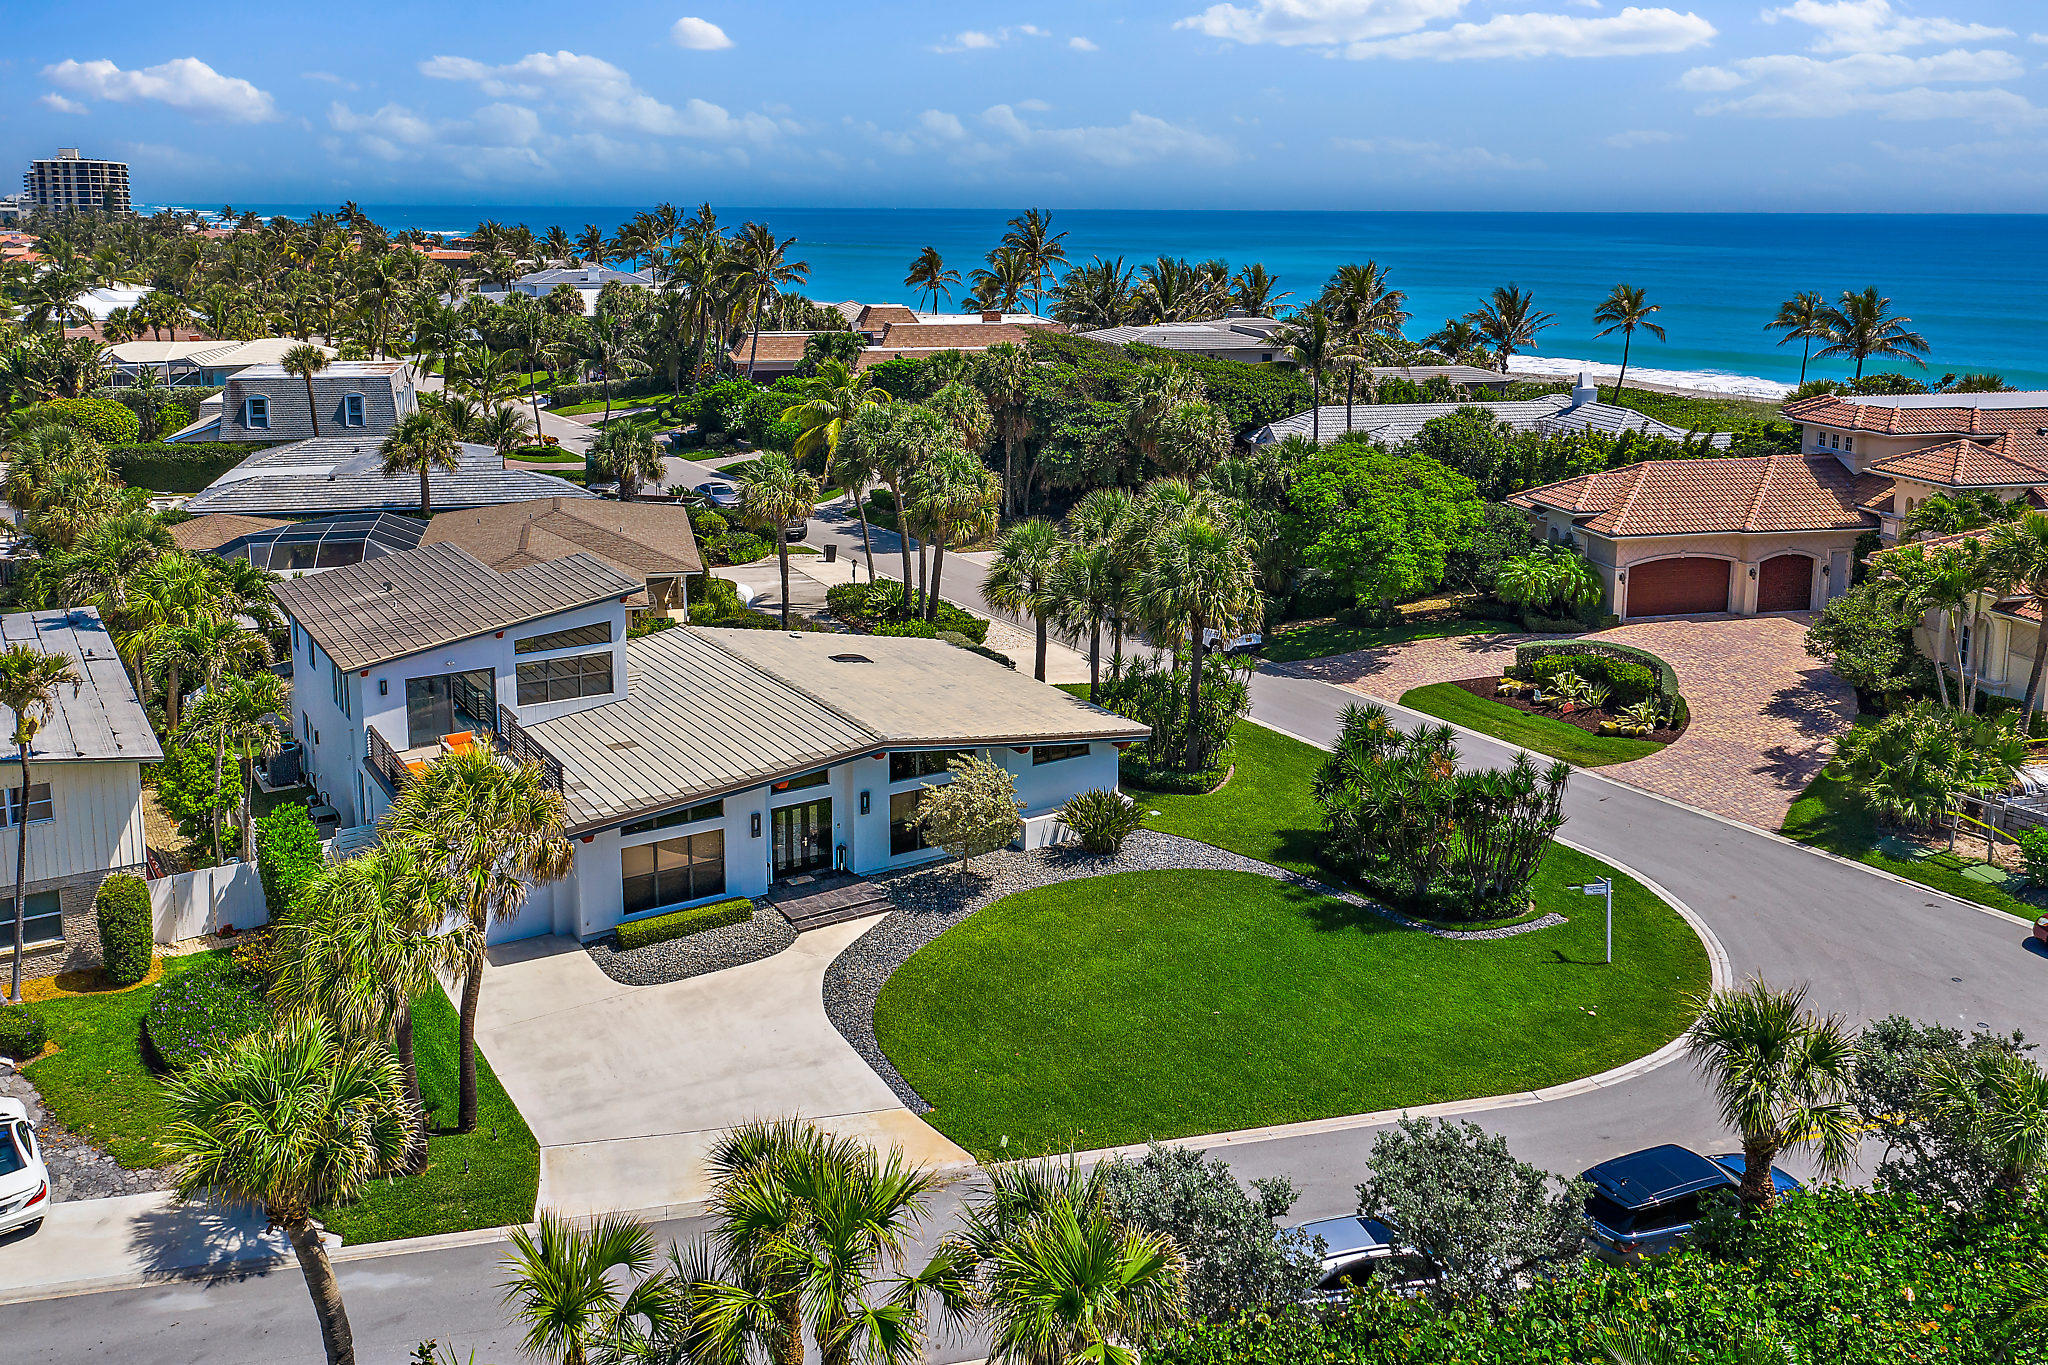 Home for sale in JUPITER INLET BEACH COLONY Jupiter Inlet Colony Florida